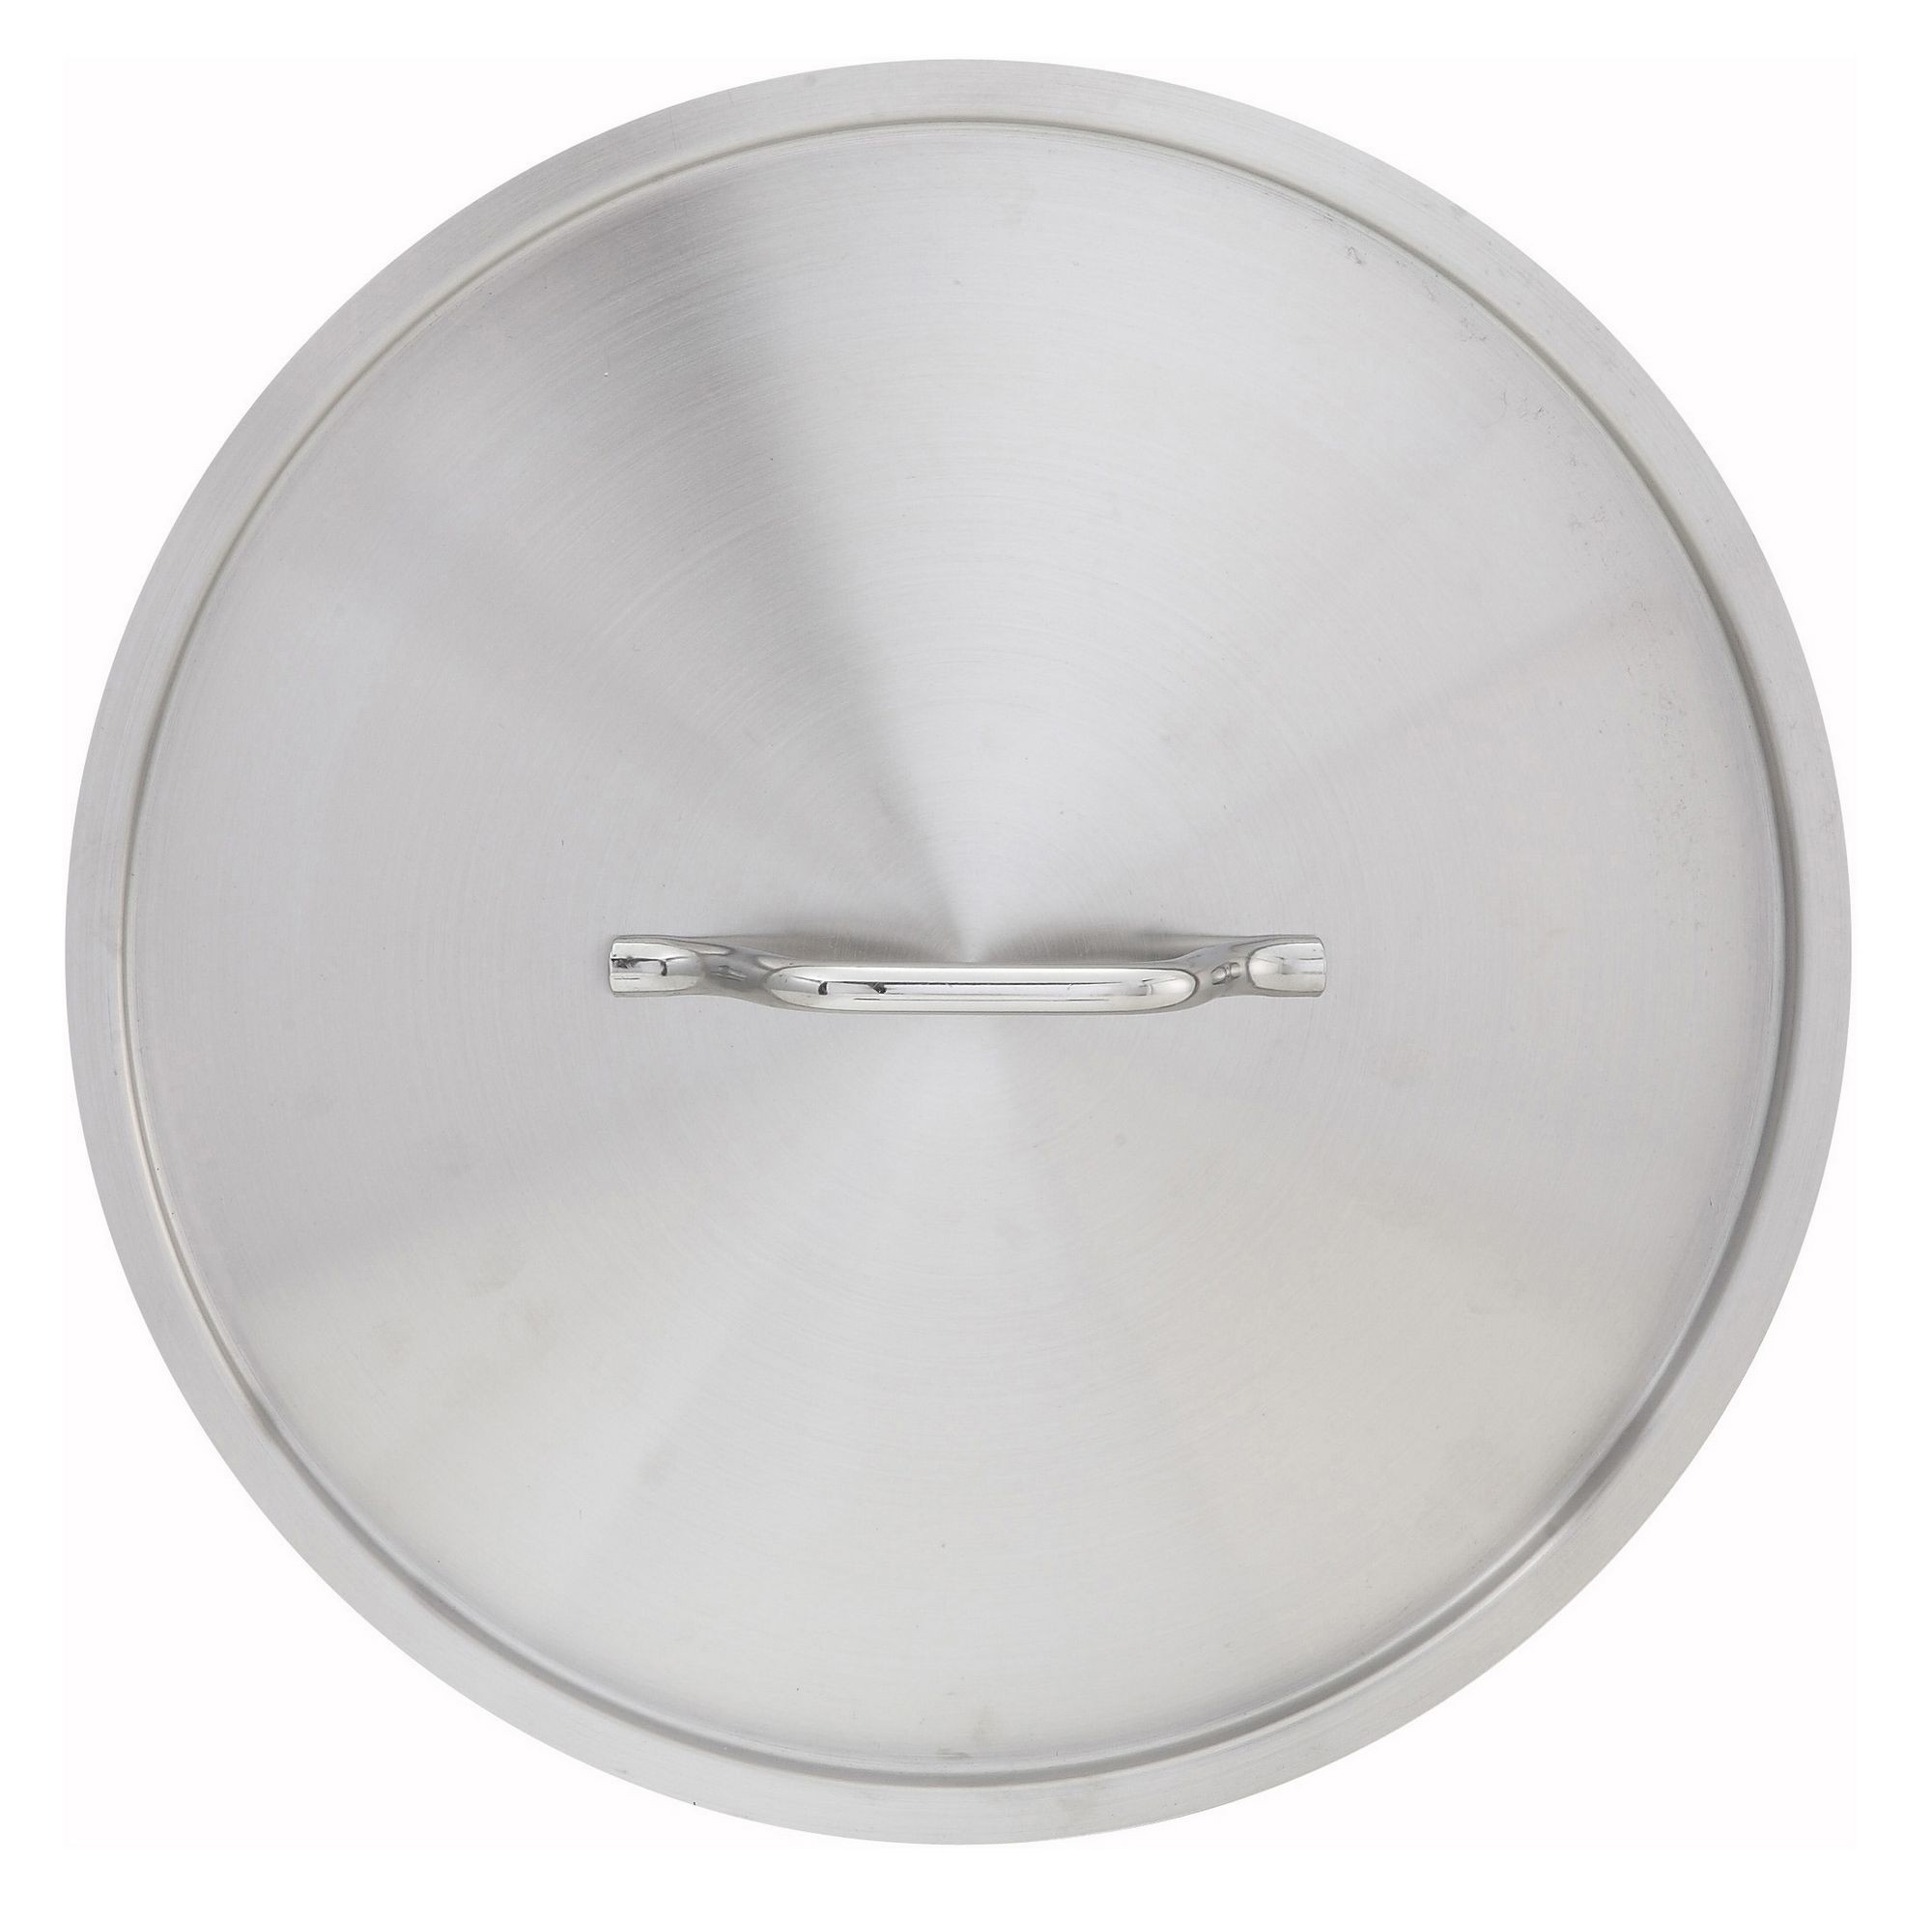 Winco SSTC-80 Stainless Steel Cover for SST-80 and SSLB-30